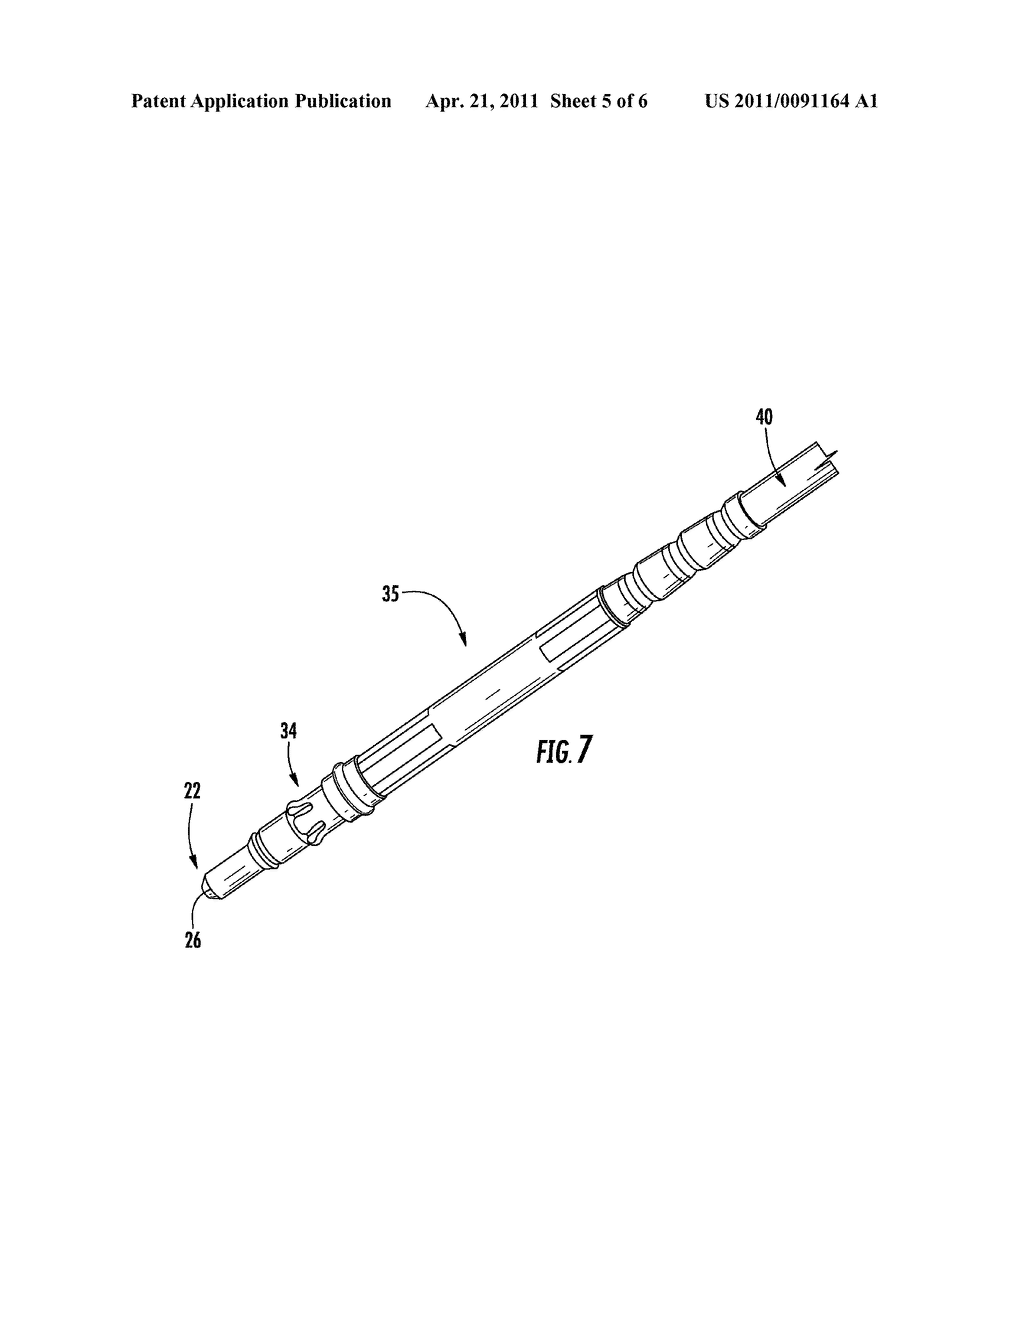 Hardened Low Back Reflection Optical Fiber Physical Contacts and Connectors Containing Such Contacts and Method for Making the Same - diagram, schematic, and image 06